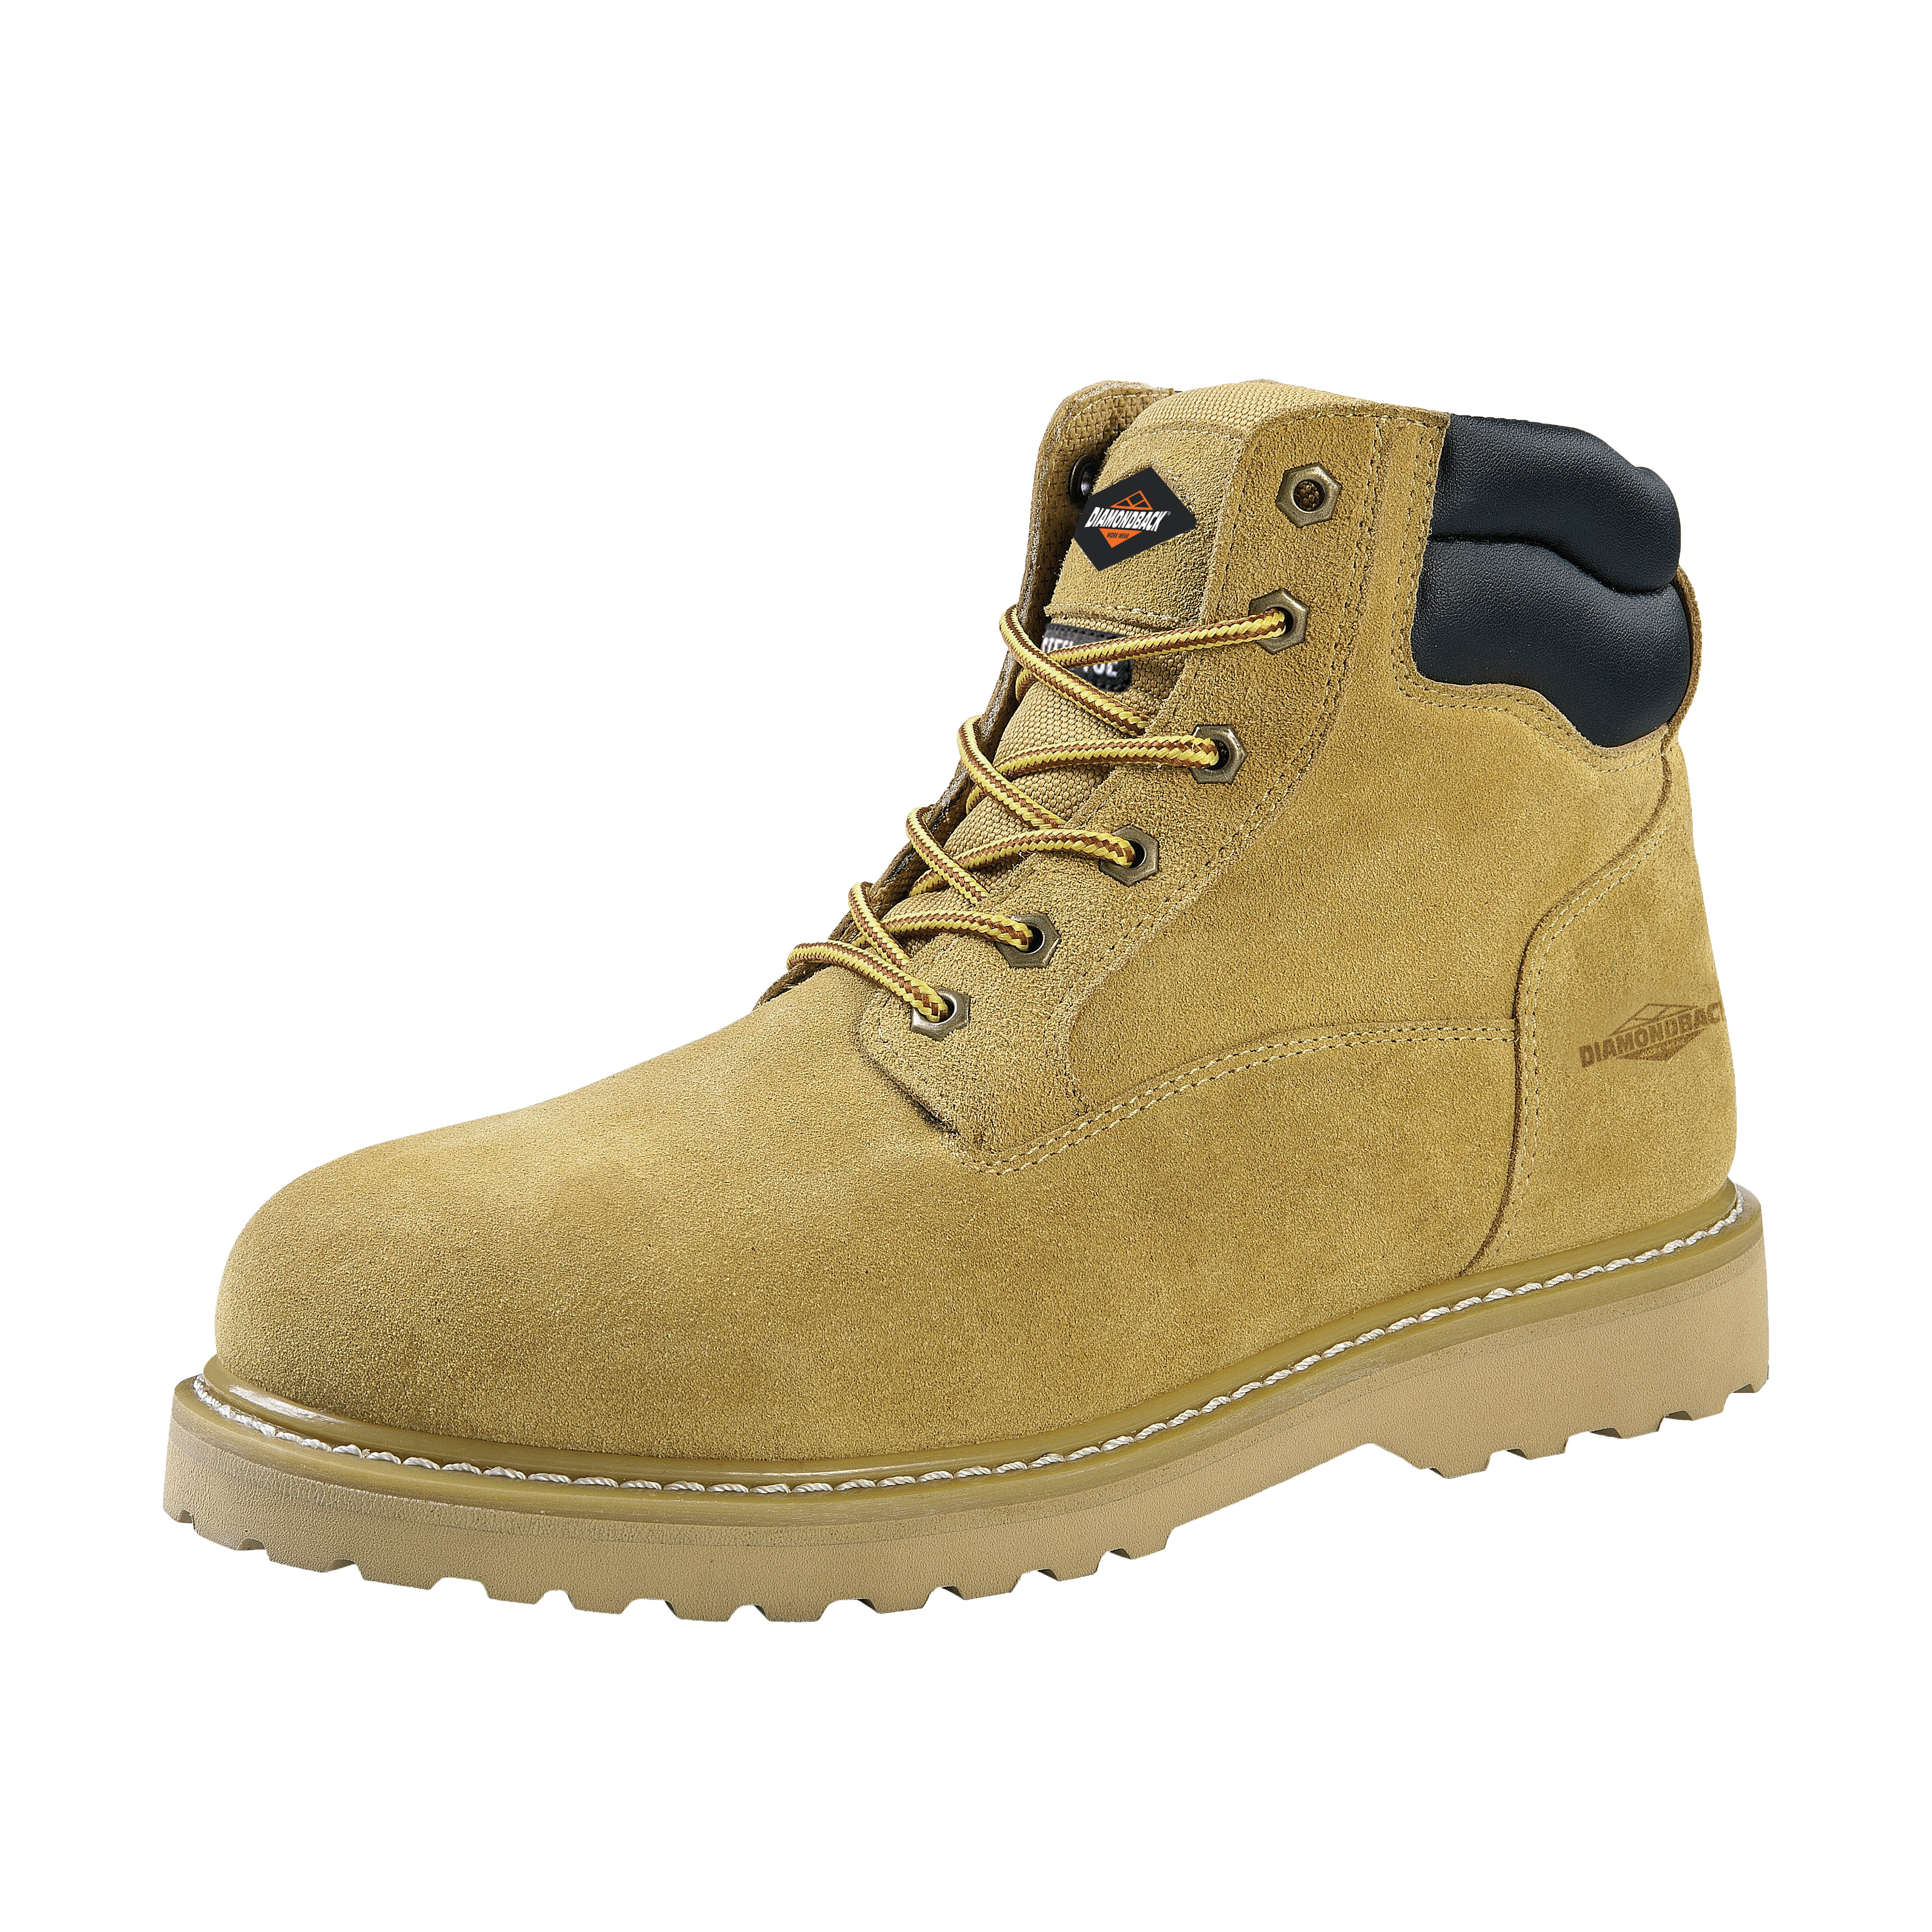 Picture of Diamondback WSST-10 Work Boots, 10, Leather Upper